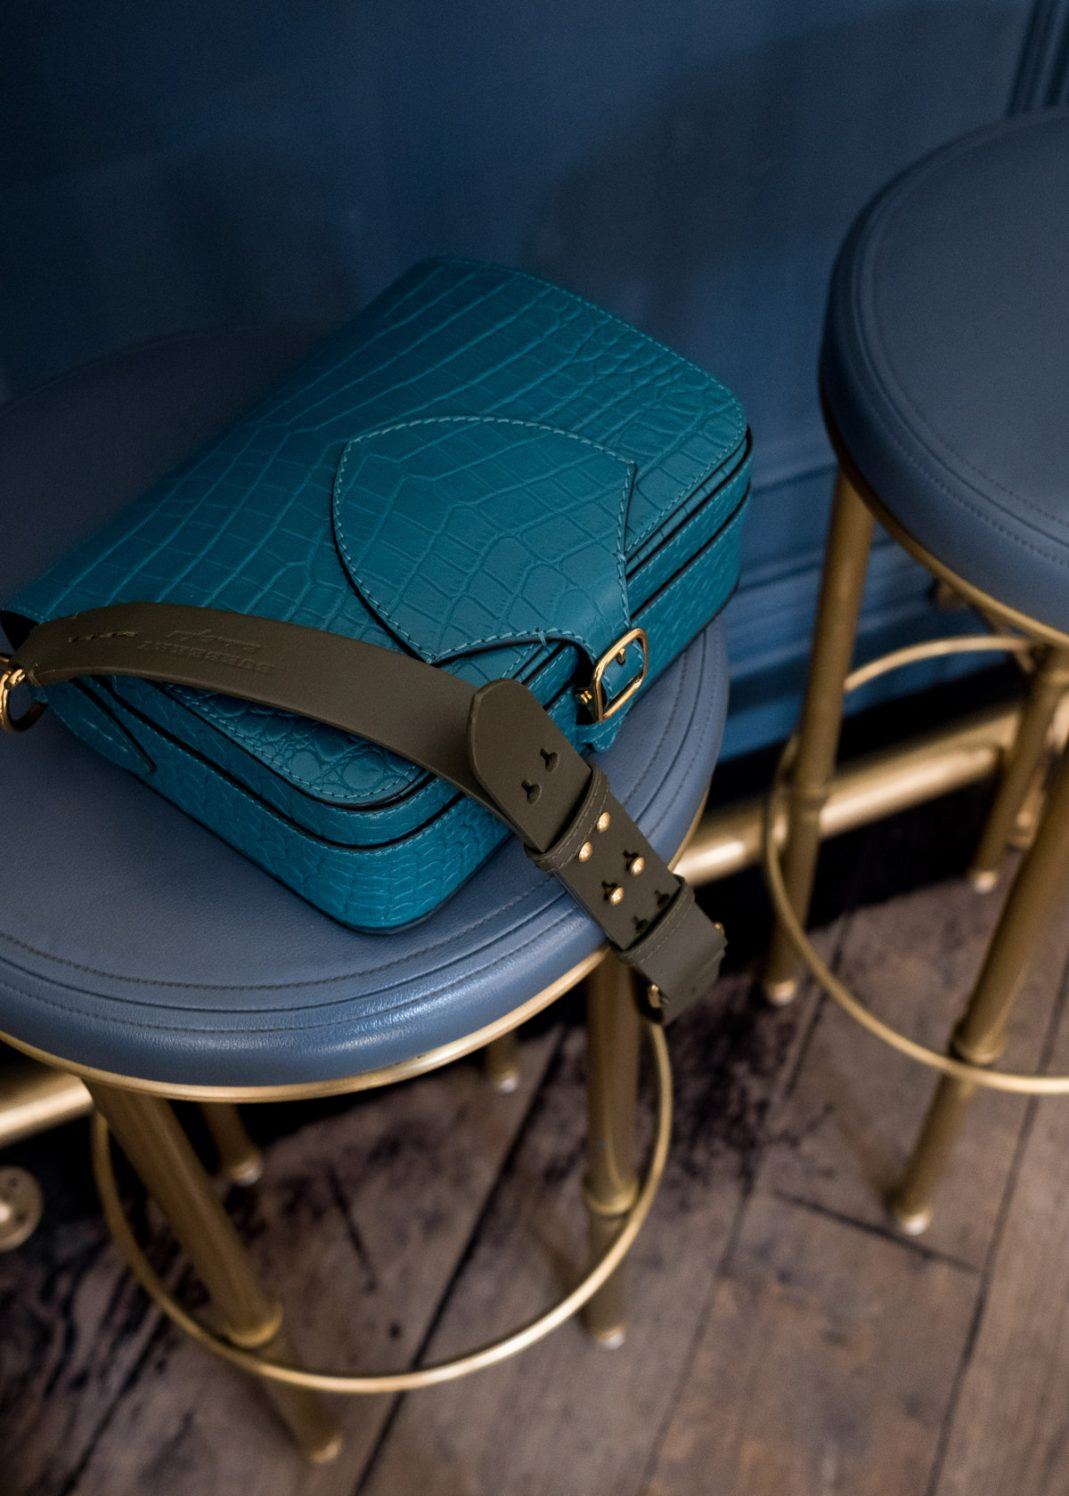 A Closer Look at the Burberry Square Satchel